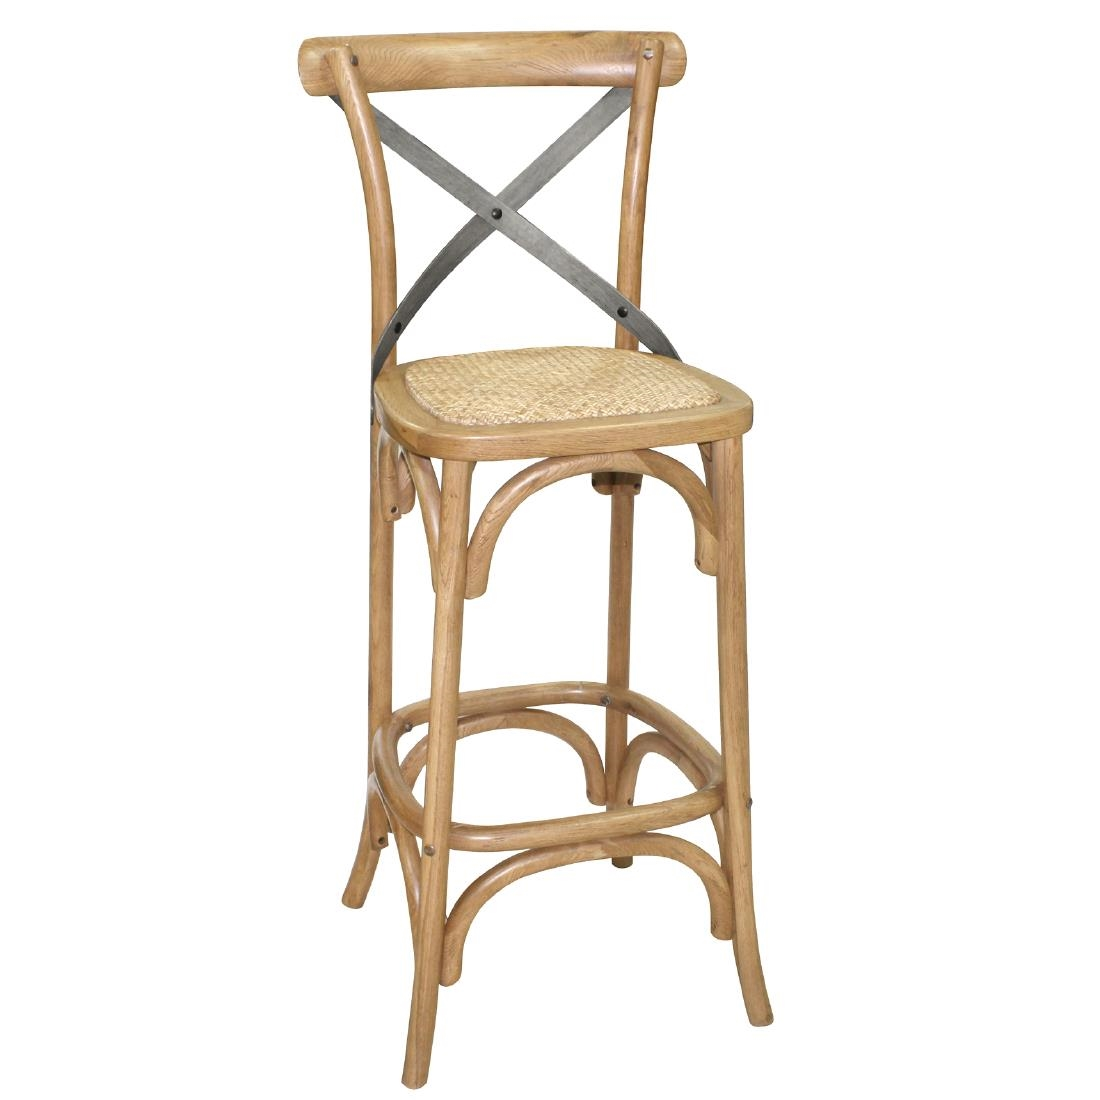 Wood Bar Chairs Bolero Wooden Bar Stool With Backrest